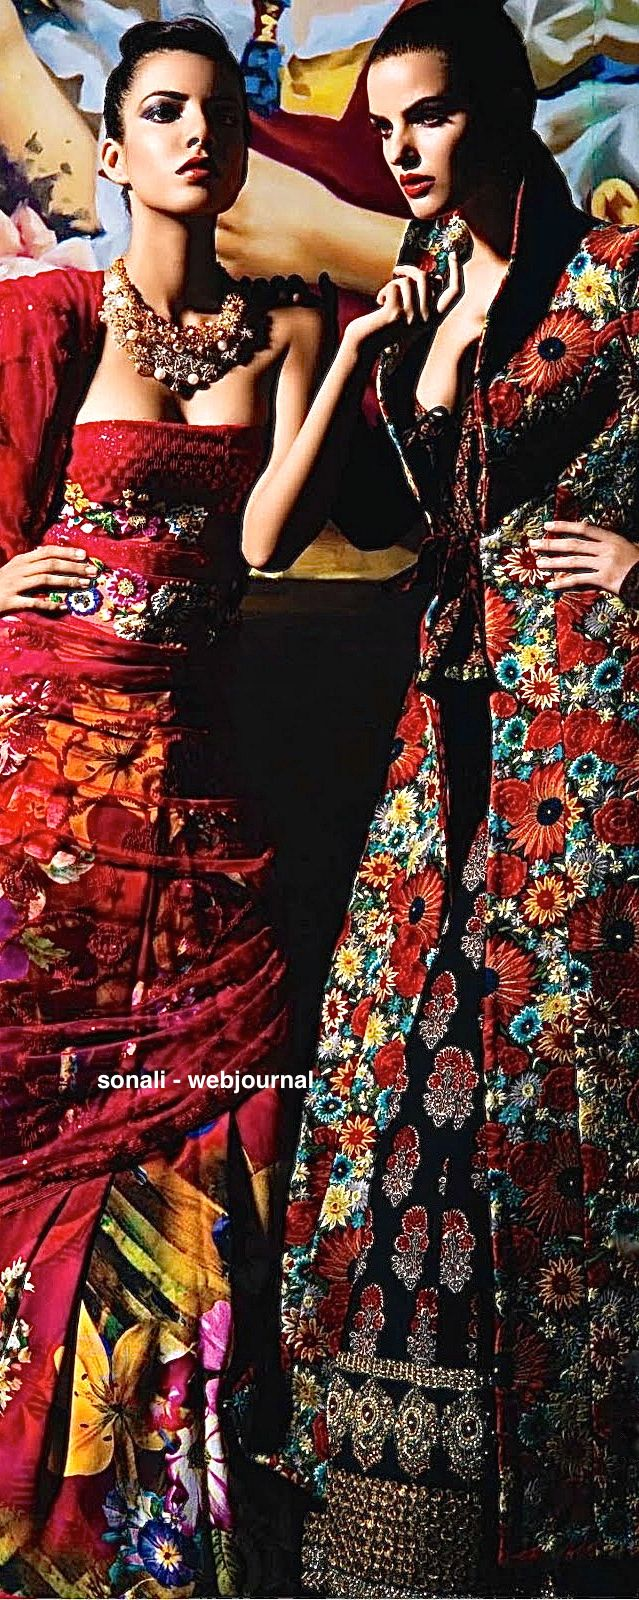 Print from Vogue India - sourced from Tumblr - Floral motif - outfit on left by Arti Talwar, outfit on right by Sabyasachi